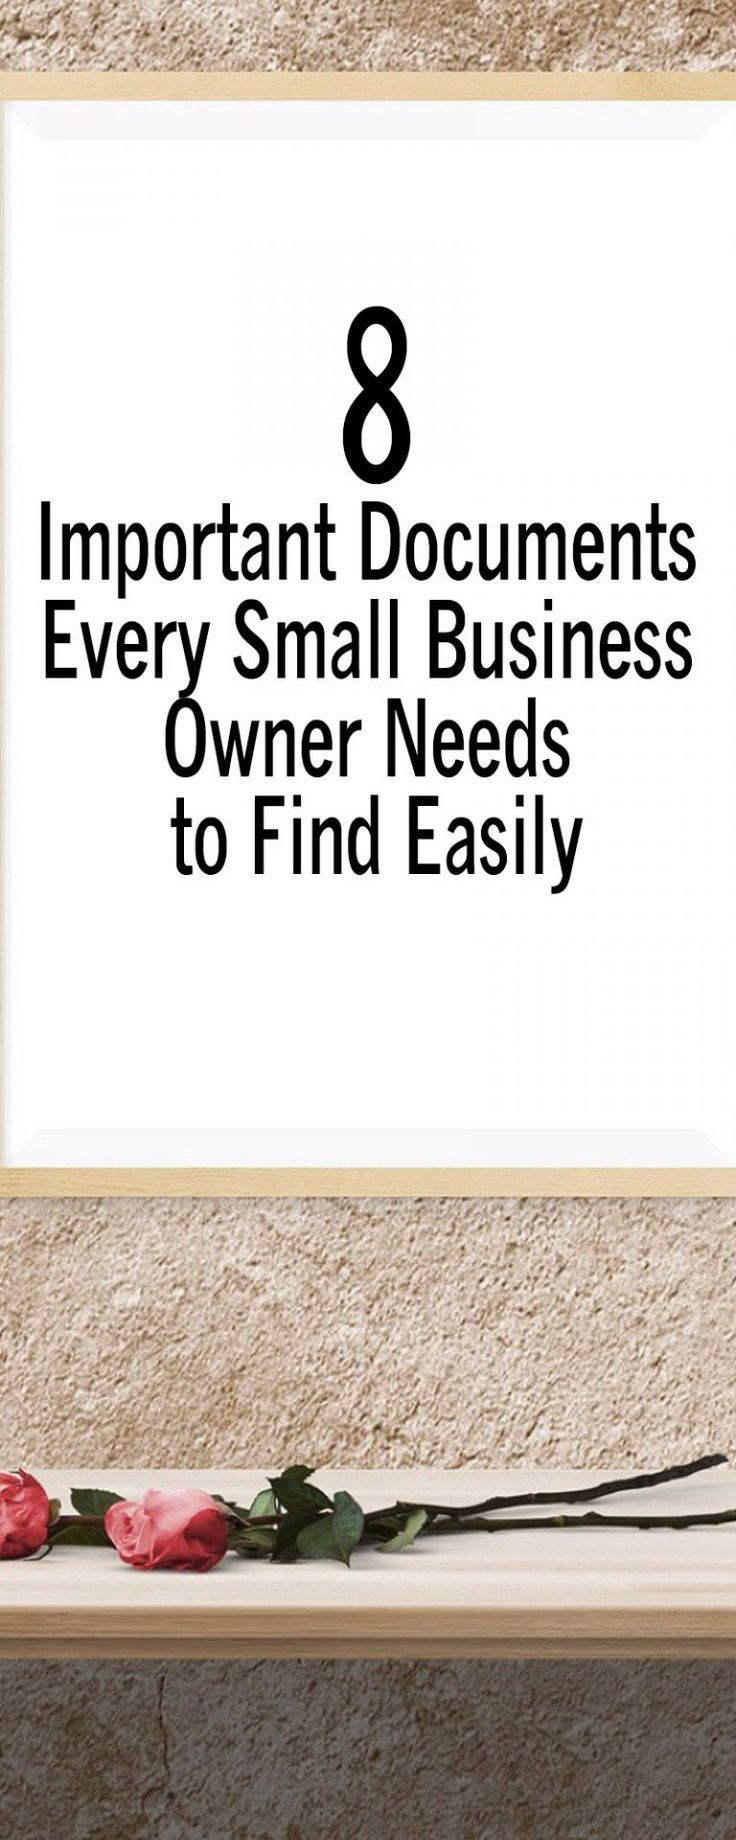 8 Important Documents Every Small Business Owner Needs to Find Easily  startup business tips